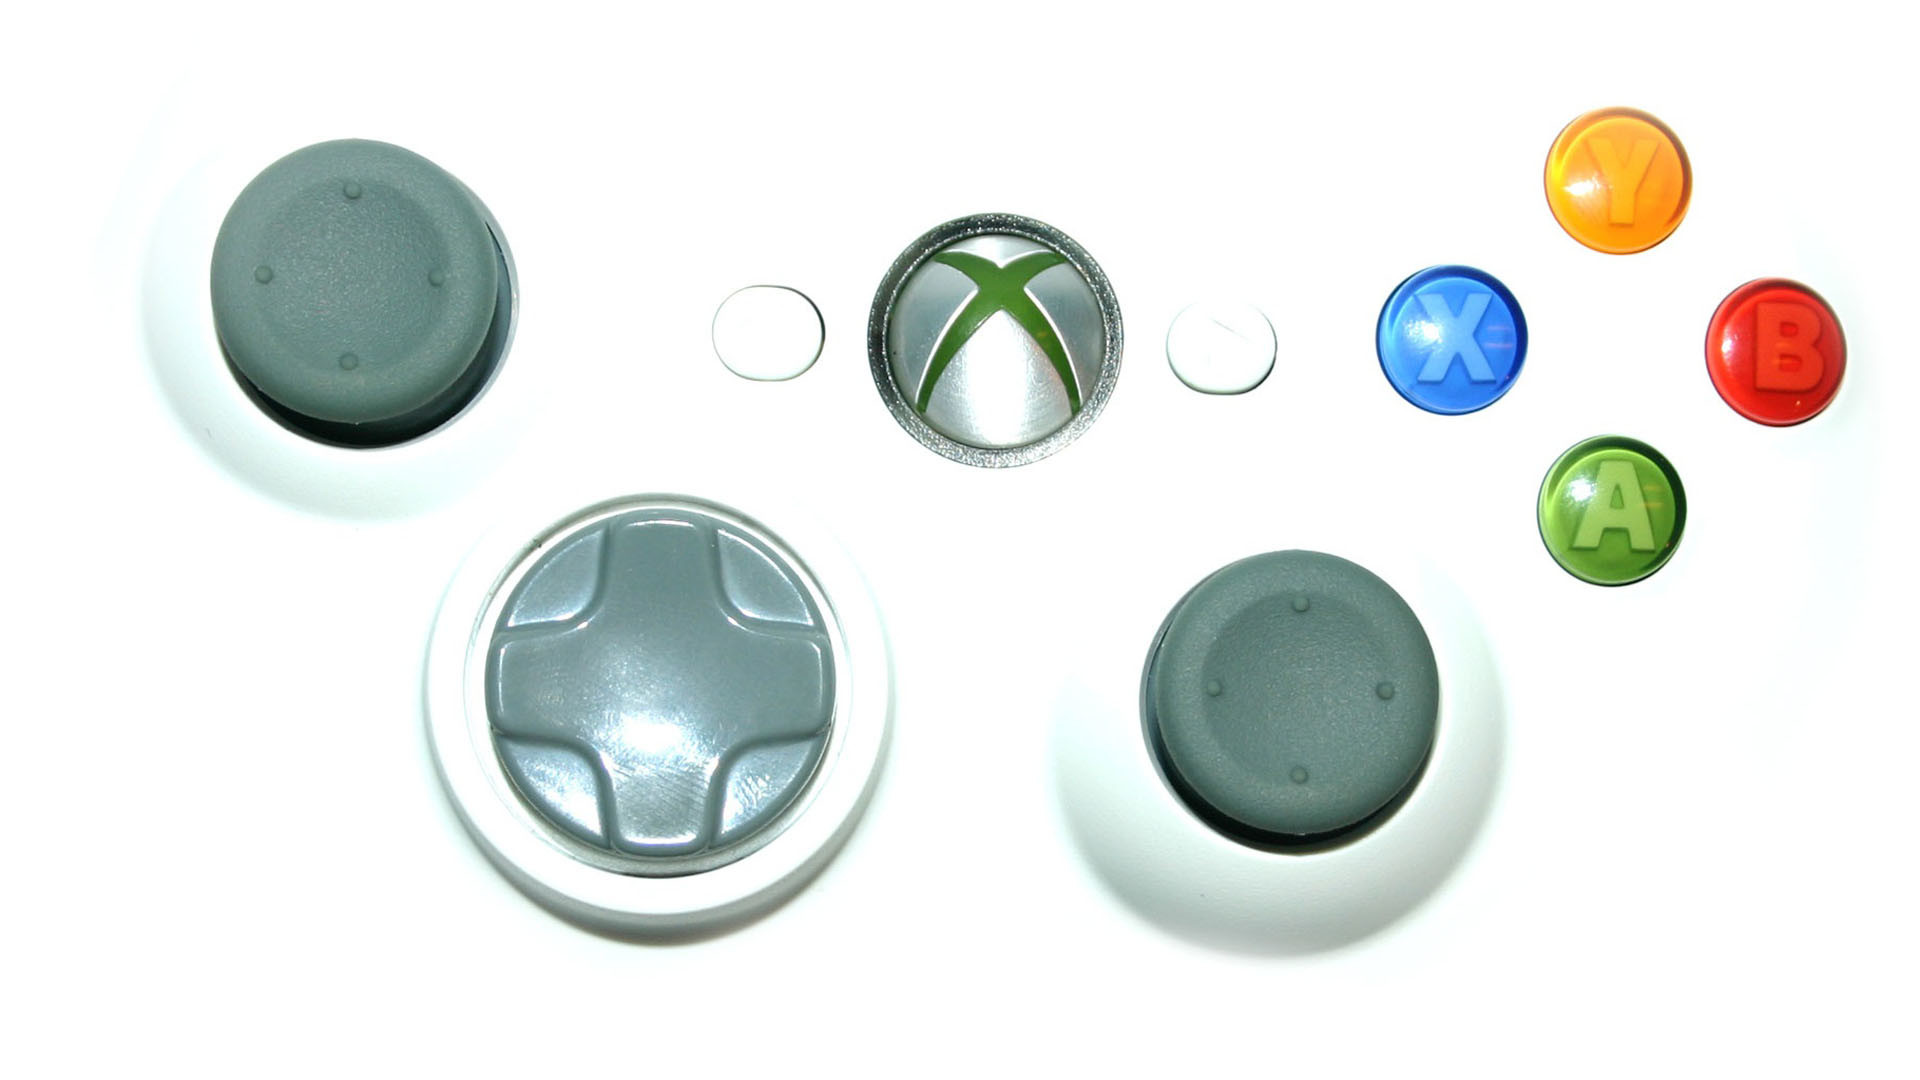 Xbox One Wallpaper | Free Xbox One | Microsoft | Gamers | free online games  |